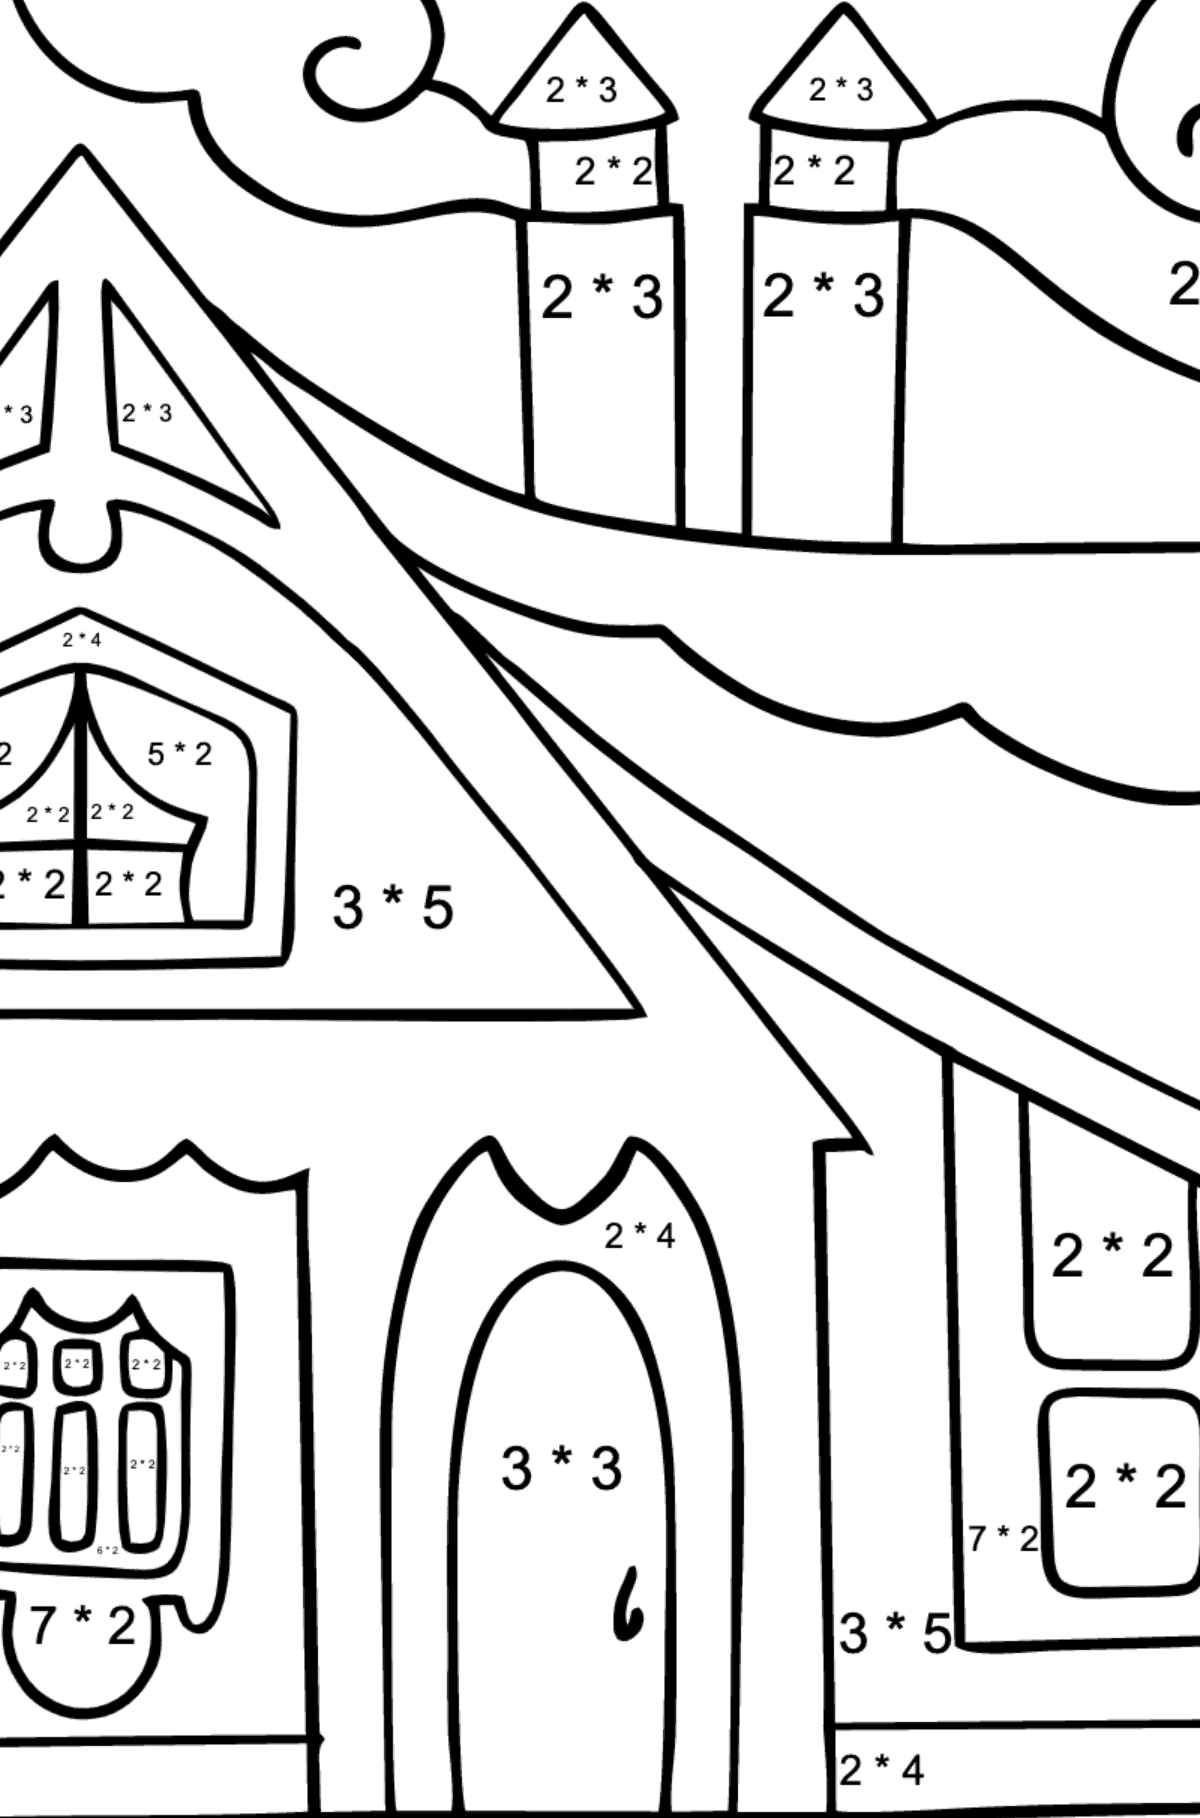 Complex Coloring Page - A Tiny House for Children  - Color by Number Multiplication